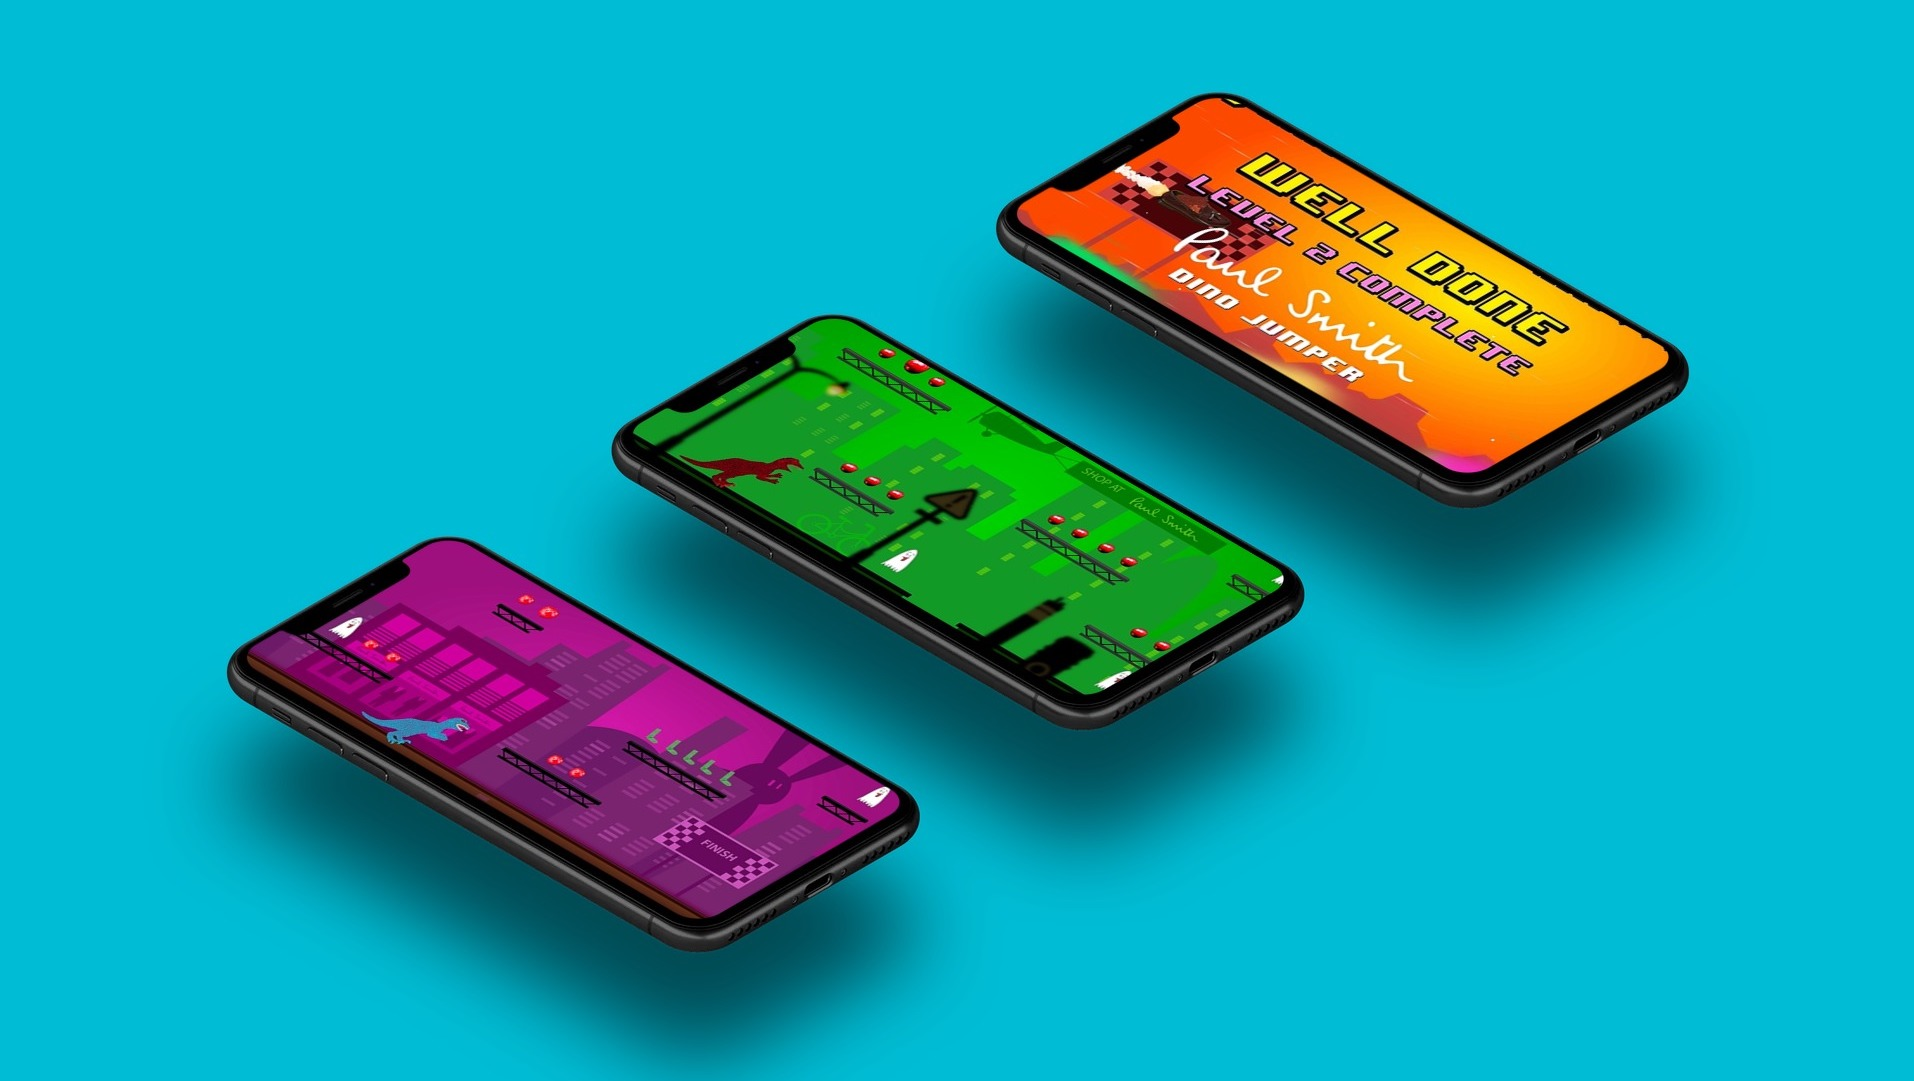 Paul Smith Dino Jumper - As mobile game developers we created a game, to be downloaded from the Apple Store and Google play for free. We used aesthetics reminiscent of old arcade games, based on the fantastic designs from the textiles. We created a fast paced, 2D side scrolling, endless runner game in Unity.